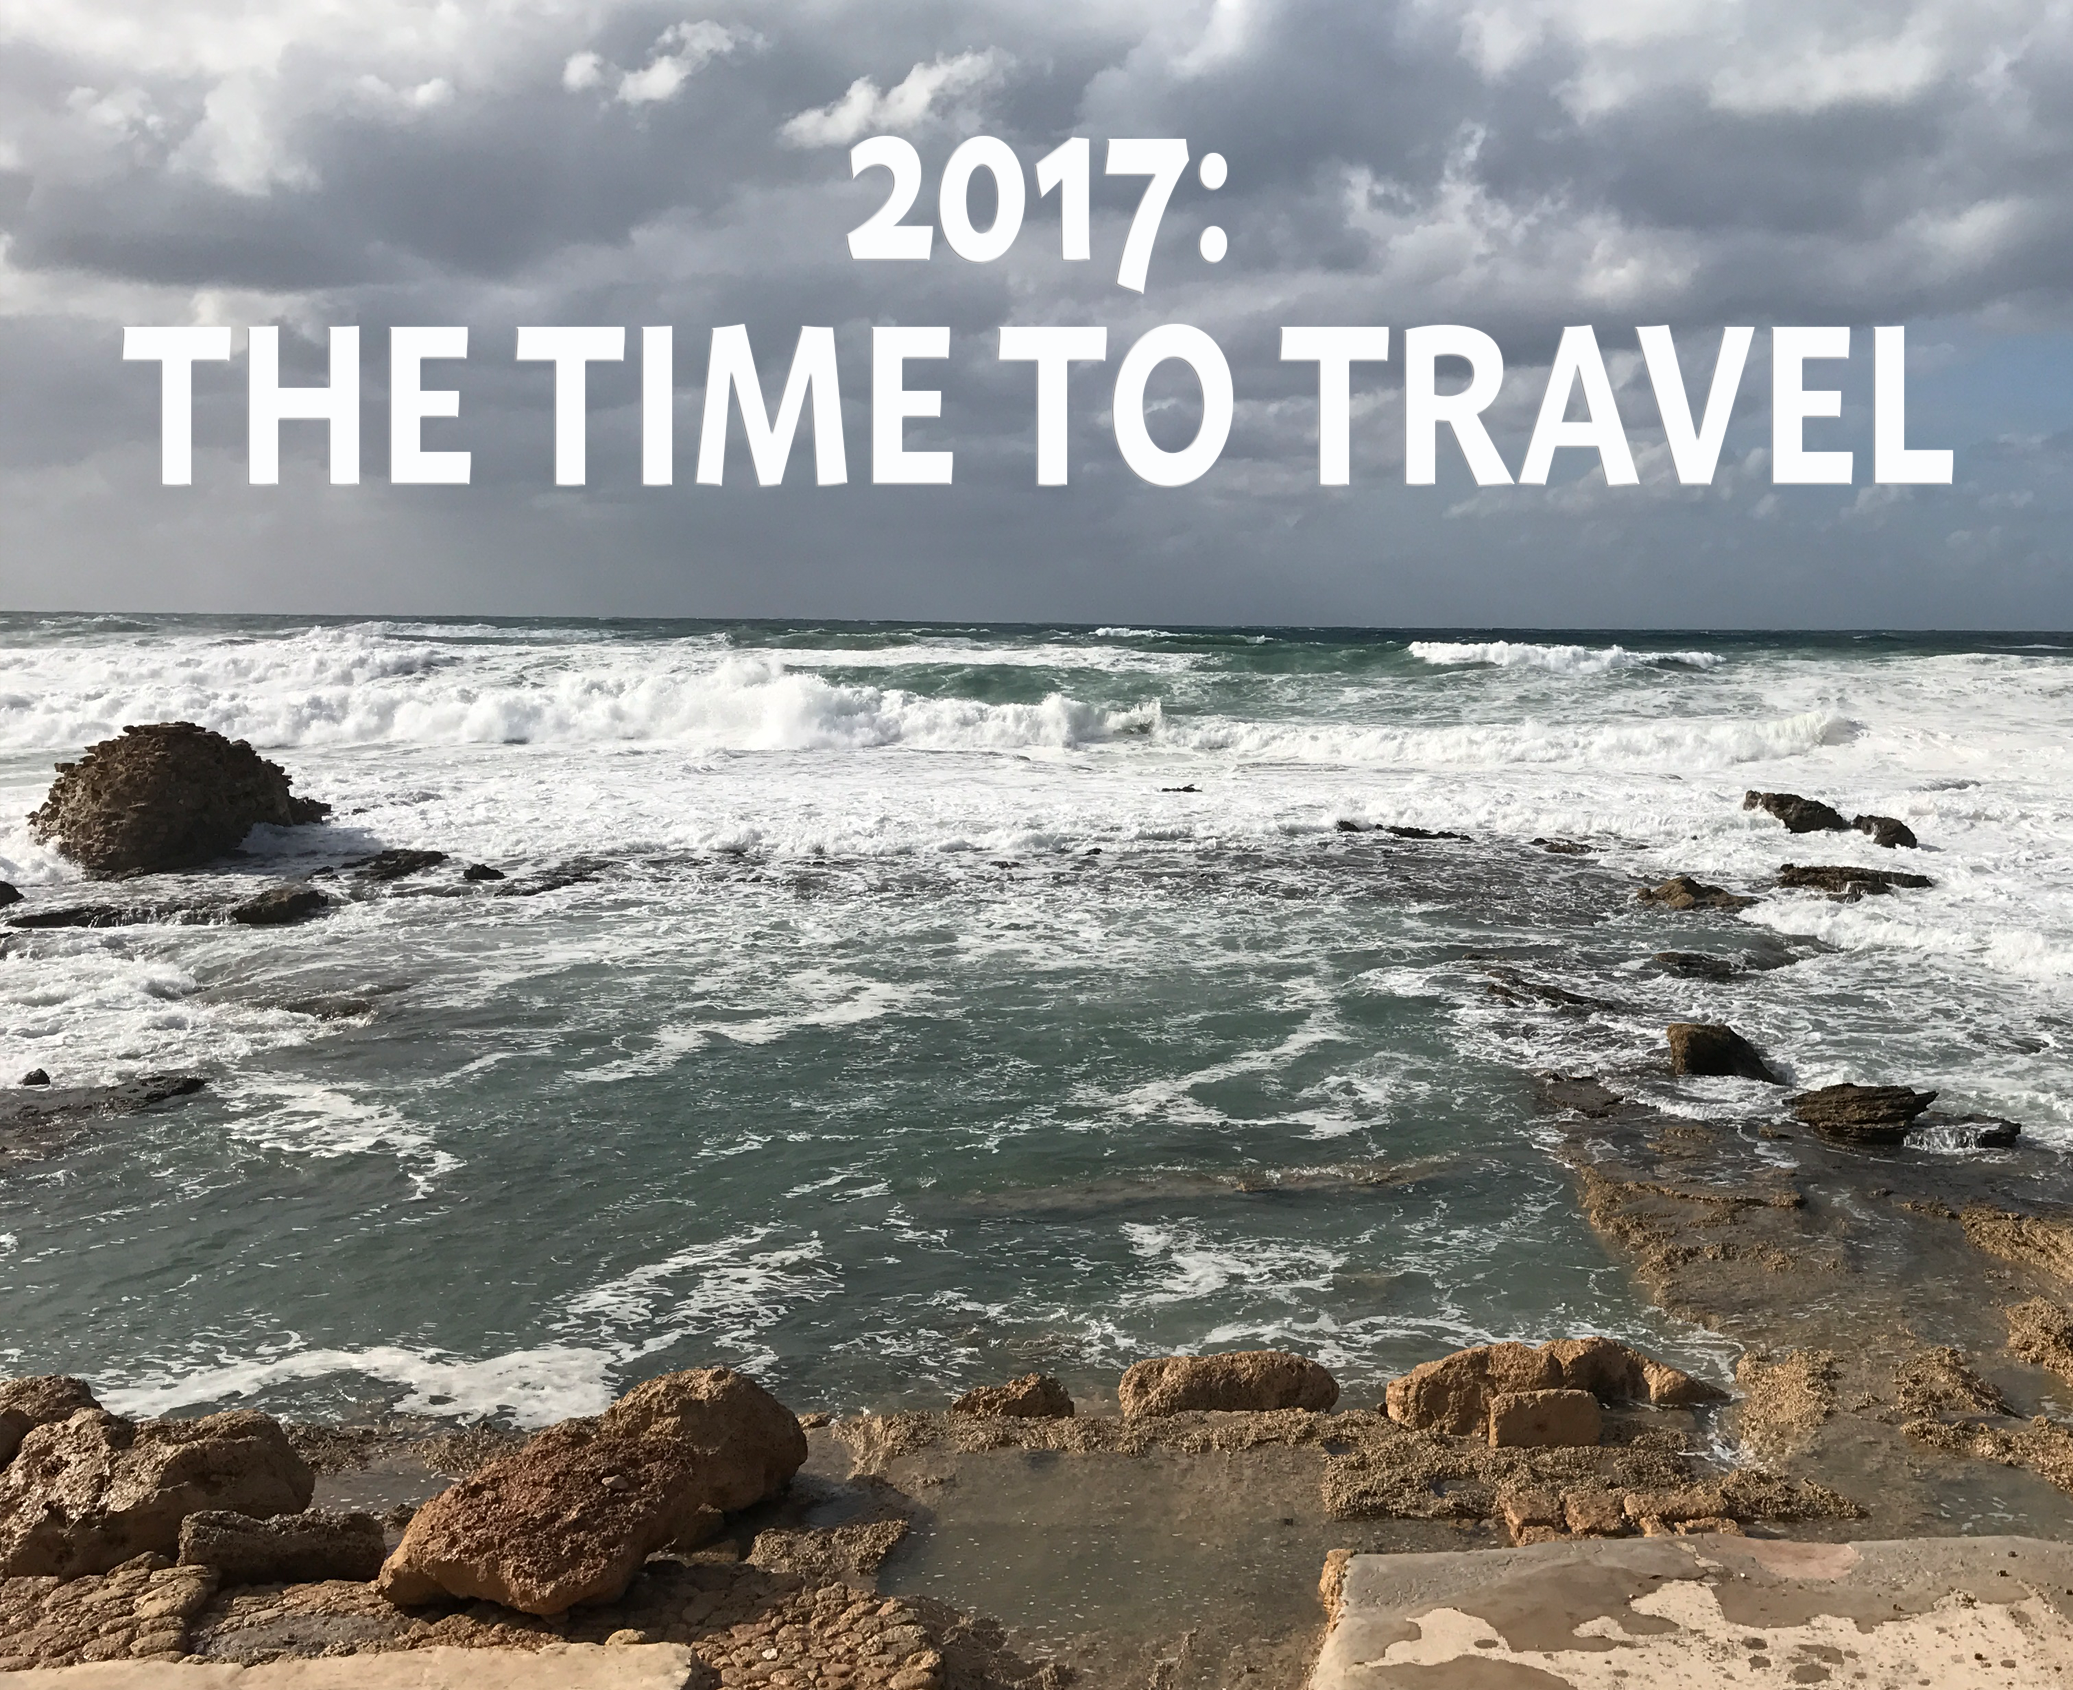 2017+Time+To+Travel+Through+The+Bible Why 2017 is the TIME To Travel! Maranatha Tours Inc..Traveling Thru The Bible Show #newyear #2017 #travel #timetotravel Pick a Tour, Pick a Date and Travel Through The Bible!